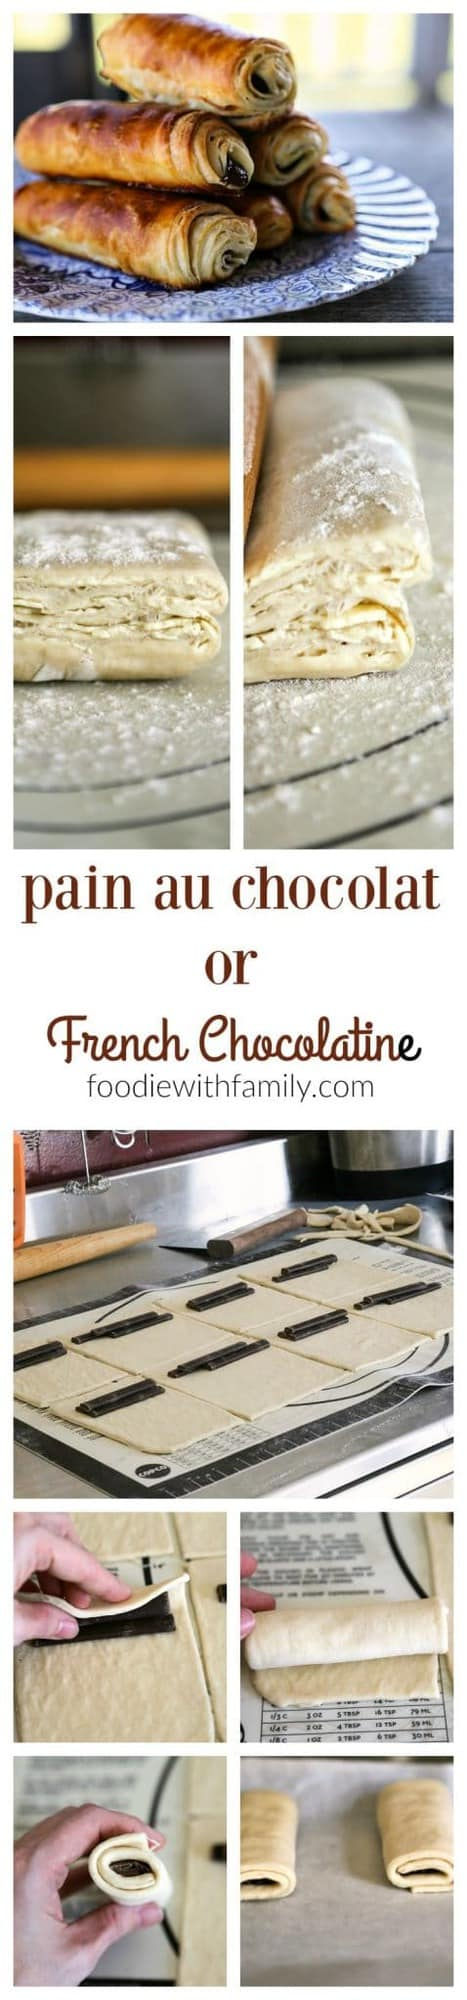 Making pain au chocolat or French chocolatines with foodiewithfamily.com